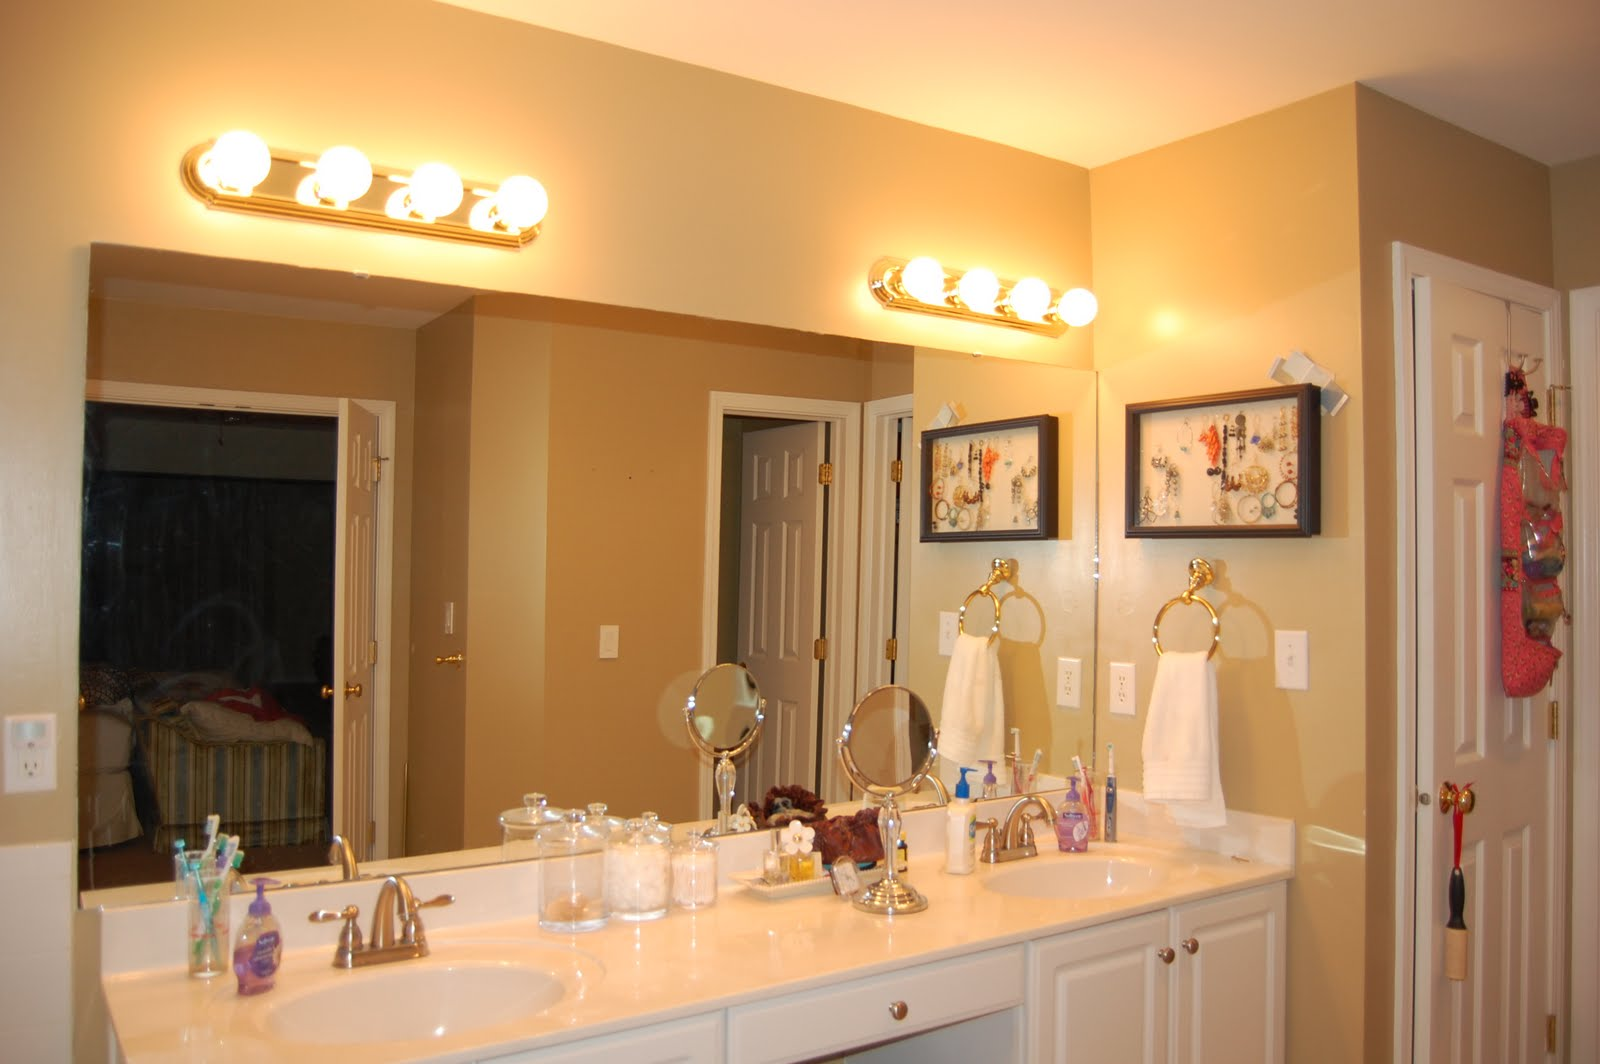 Kicking it in the Suburbs: Master Bath Reno- Part 6- Light Selection